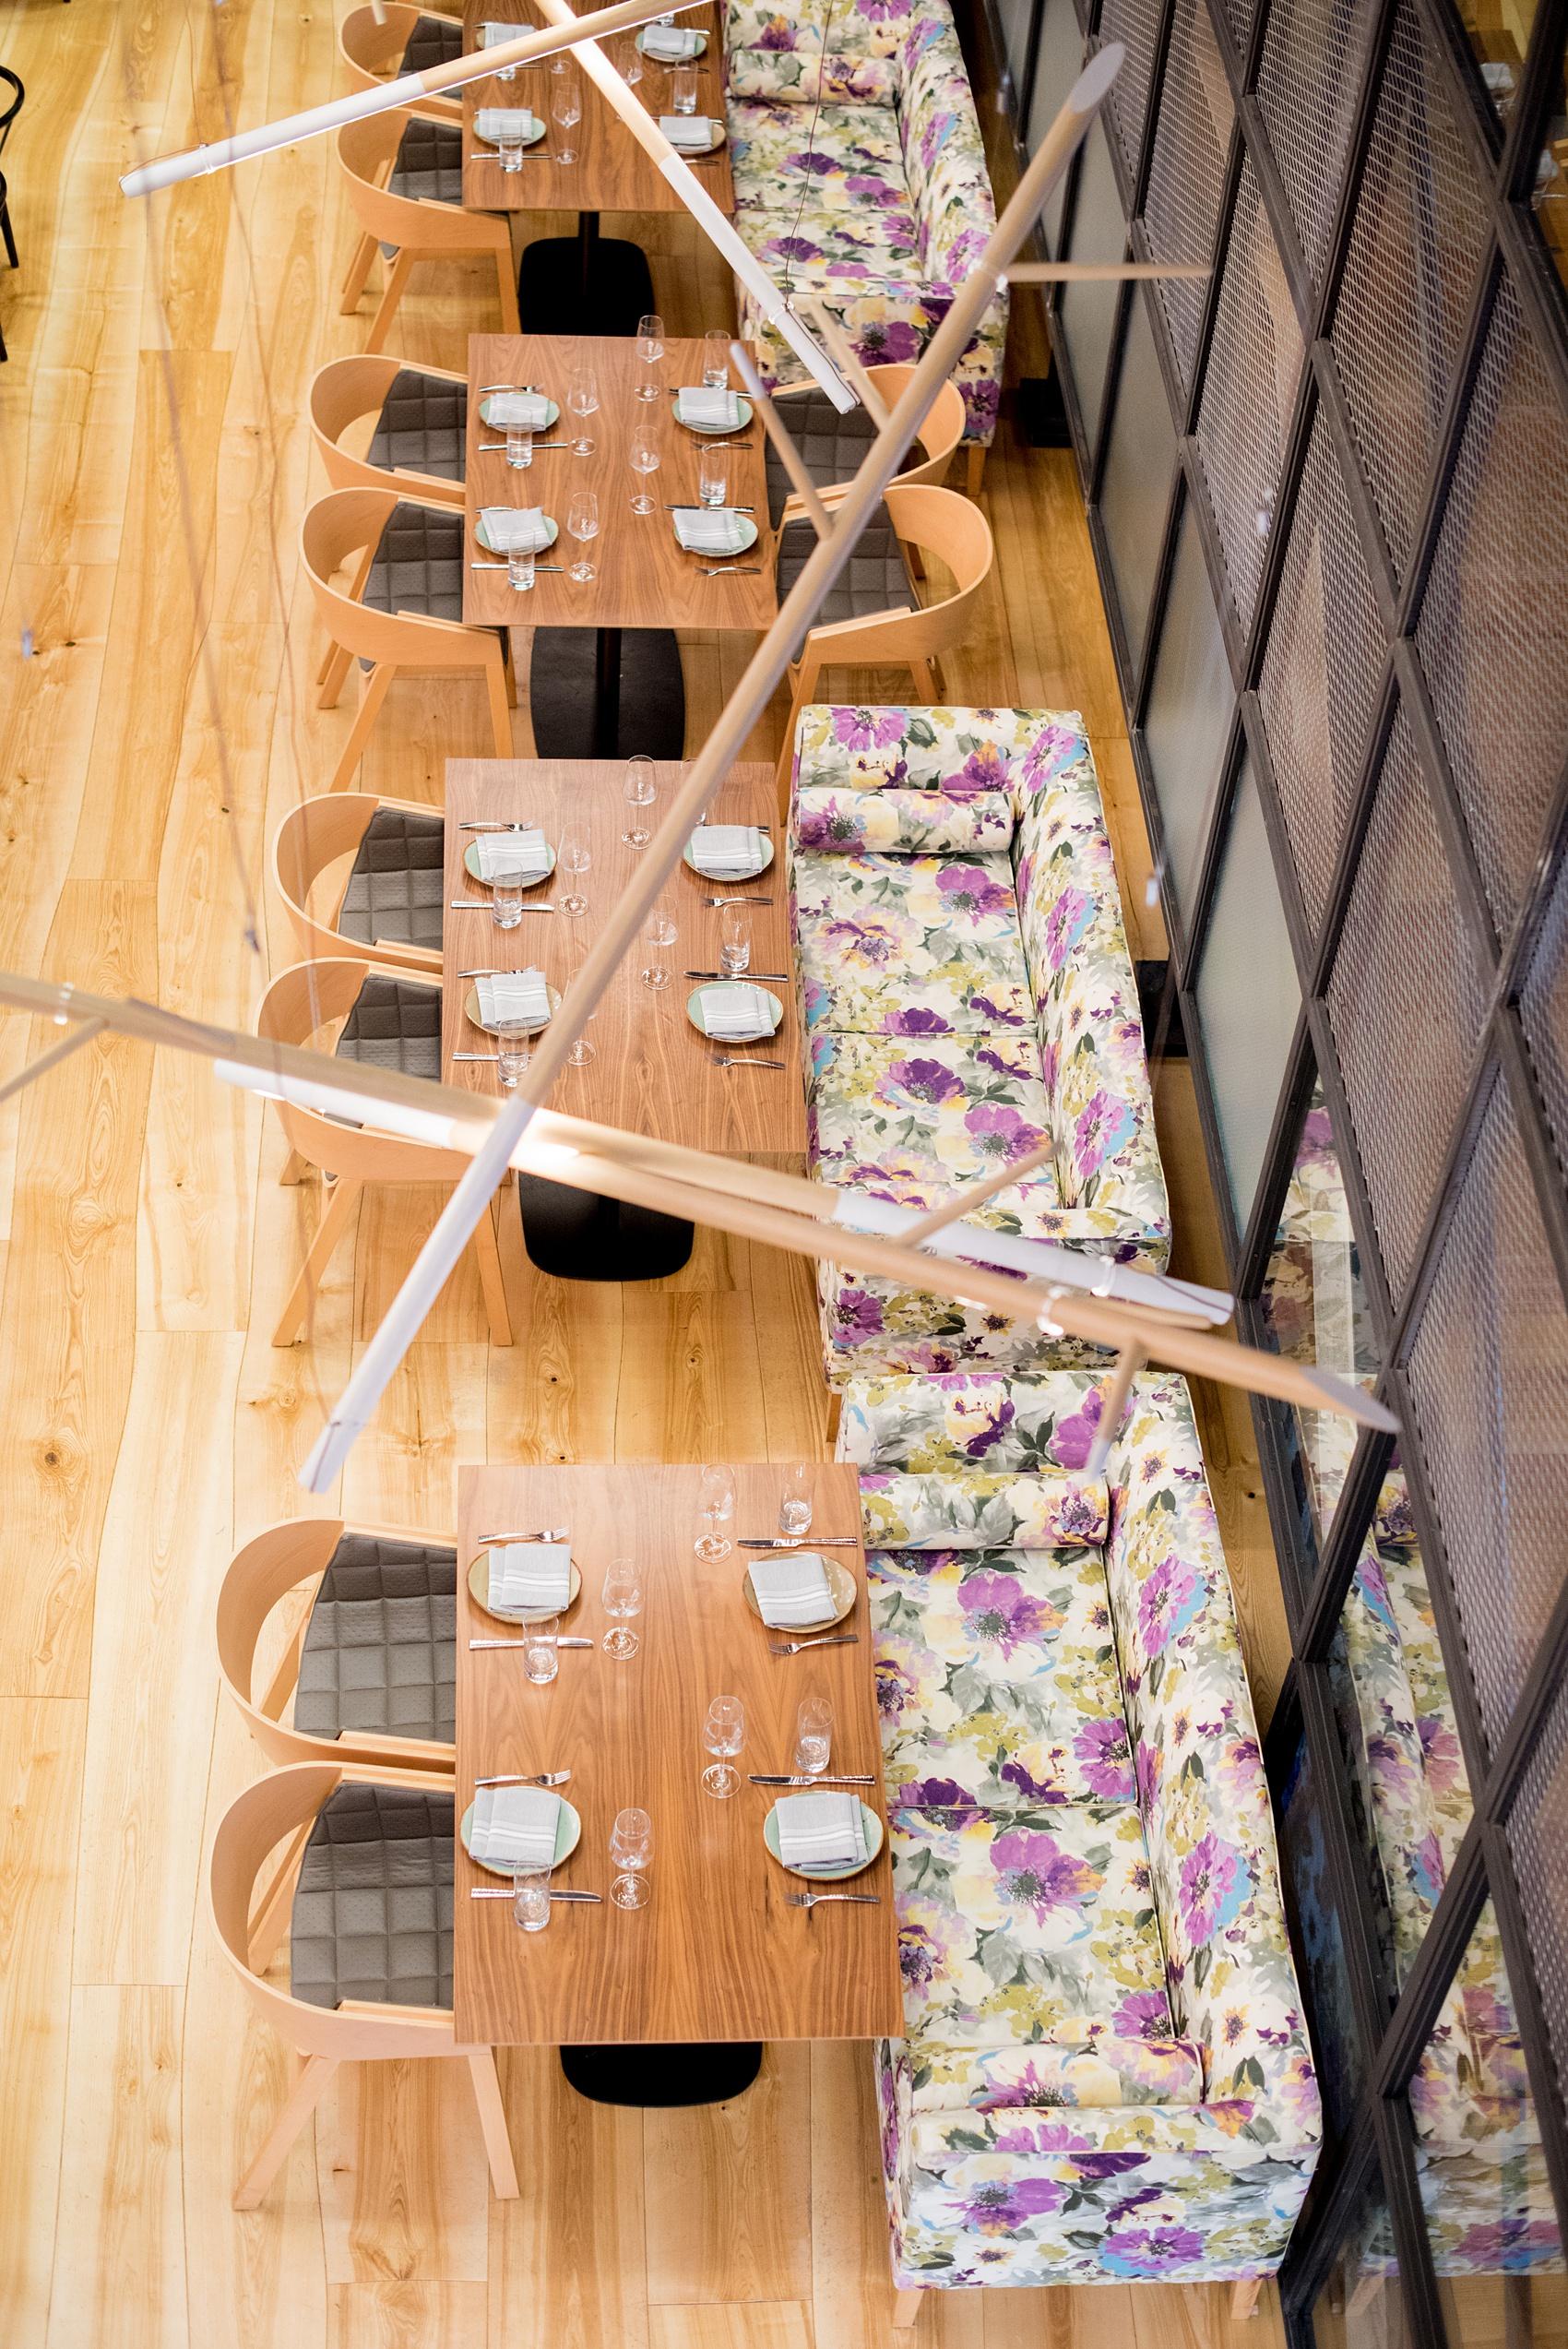 Photos of Vidrio restaurant in Raleigh, NC by Mikkel Paige Photography. Wedding venue in North Carolina with mediterranean and Spanish inspired art and interior design.